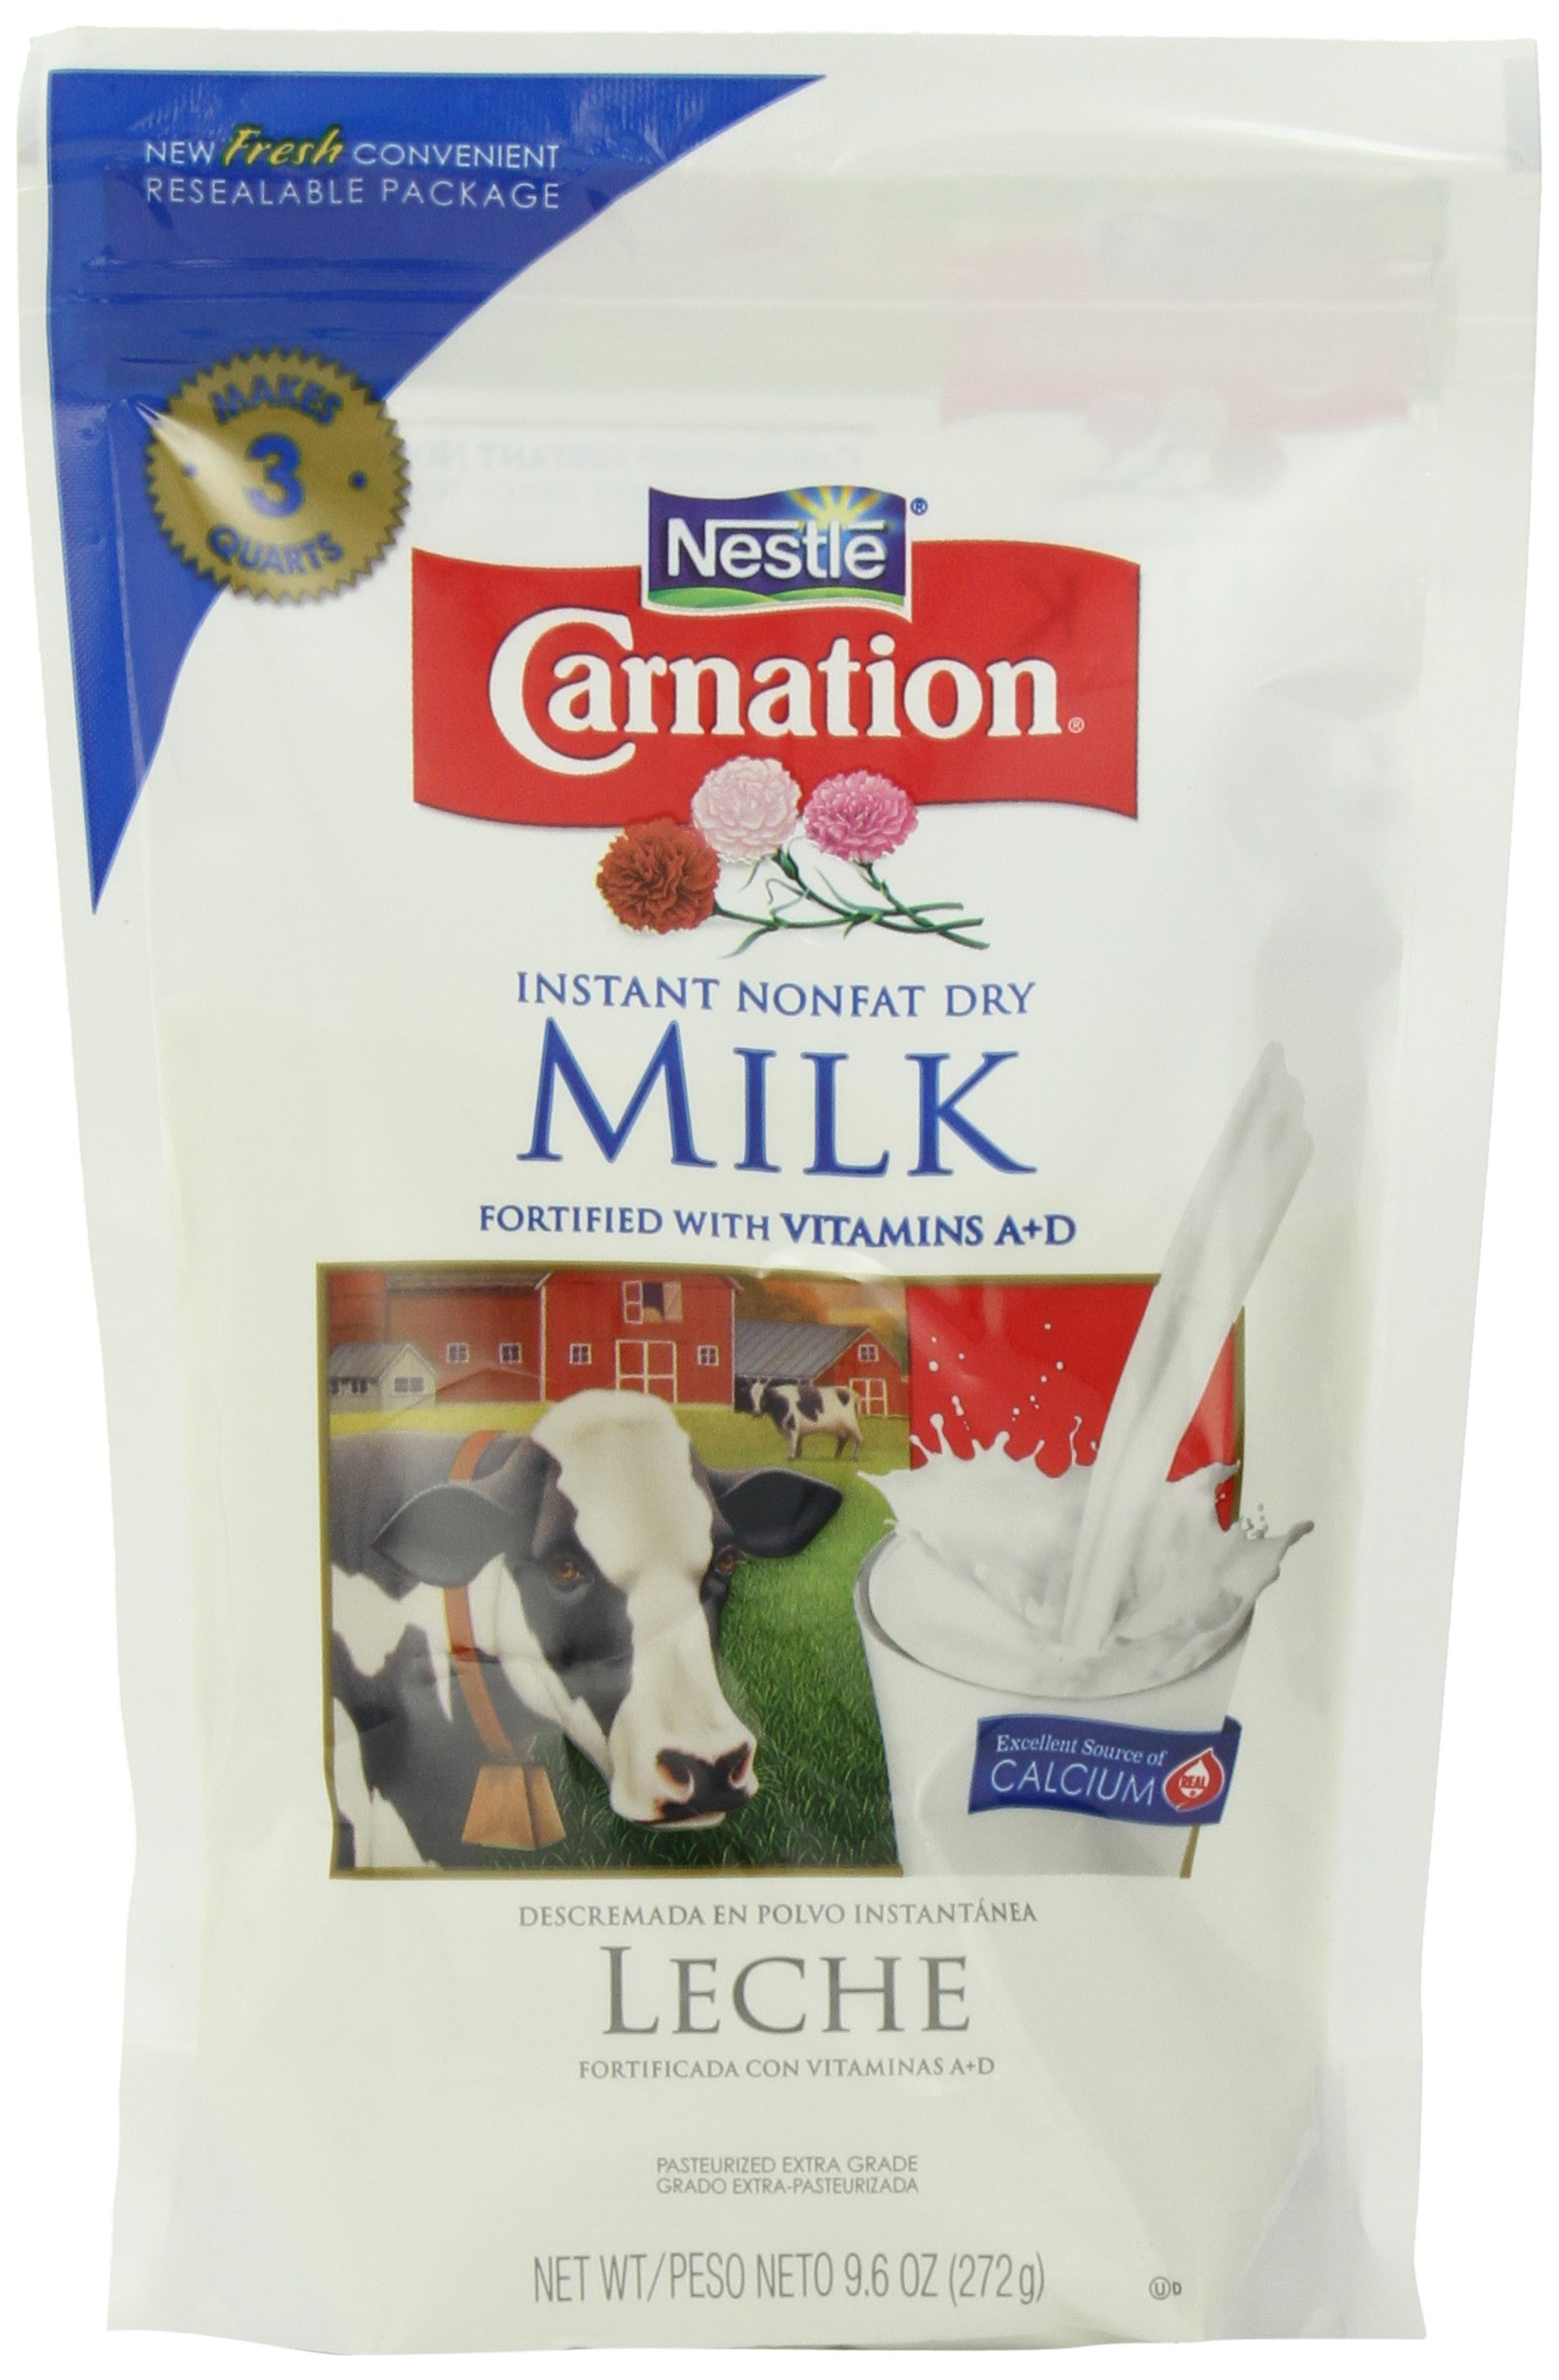 Nestle Carnation Instant Nonfat Dry Milk, 9.6-Ounce Pouch, (Pack of 4)